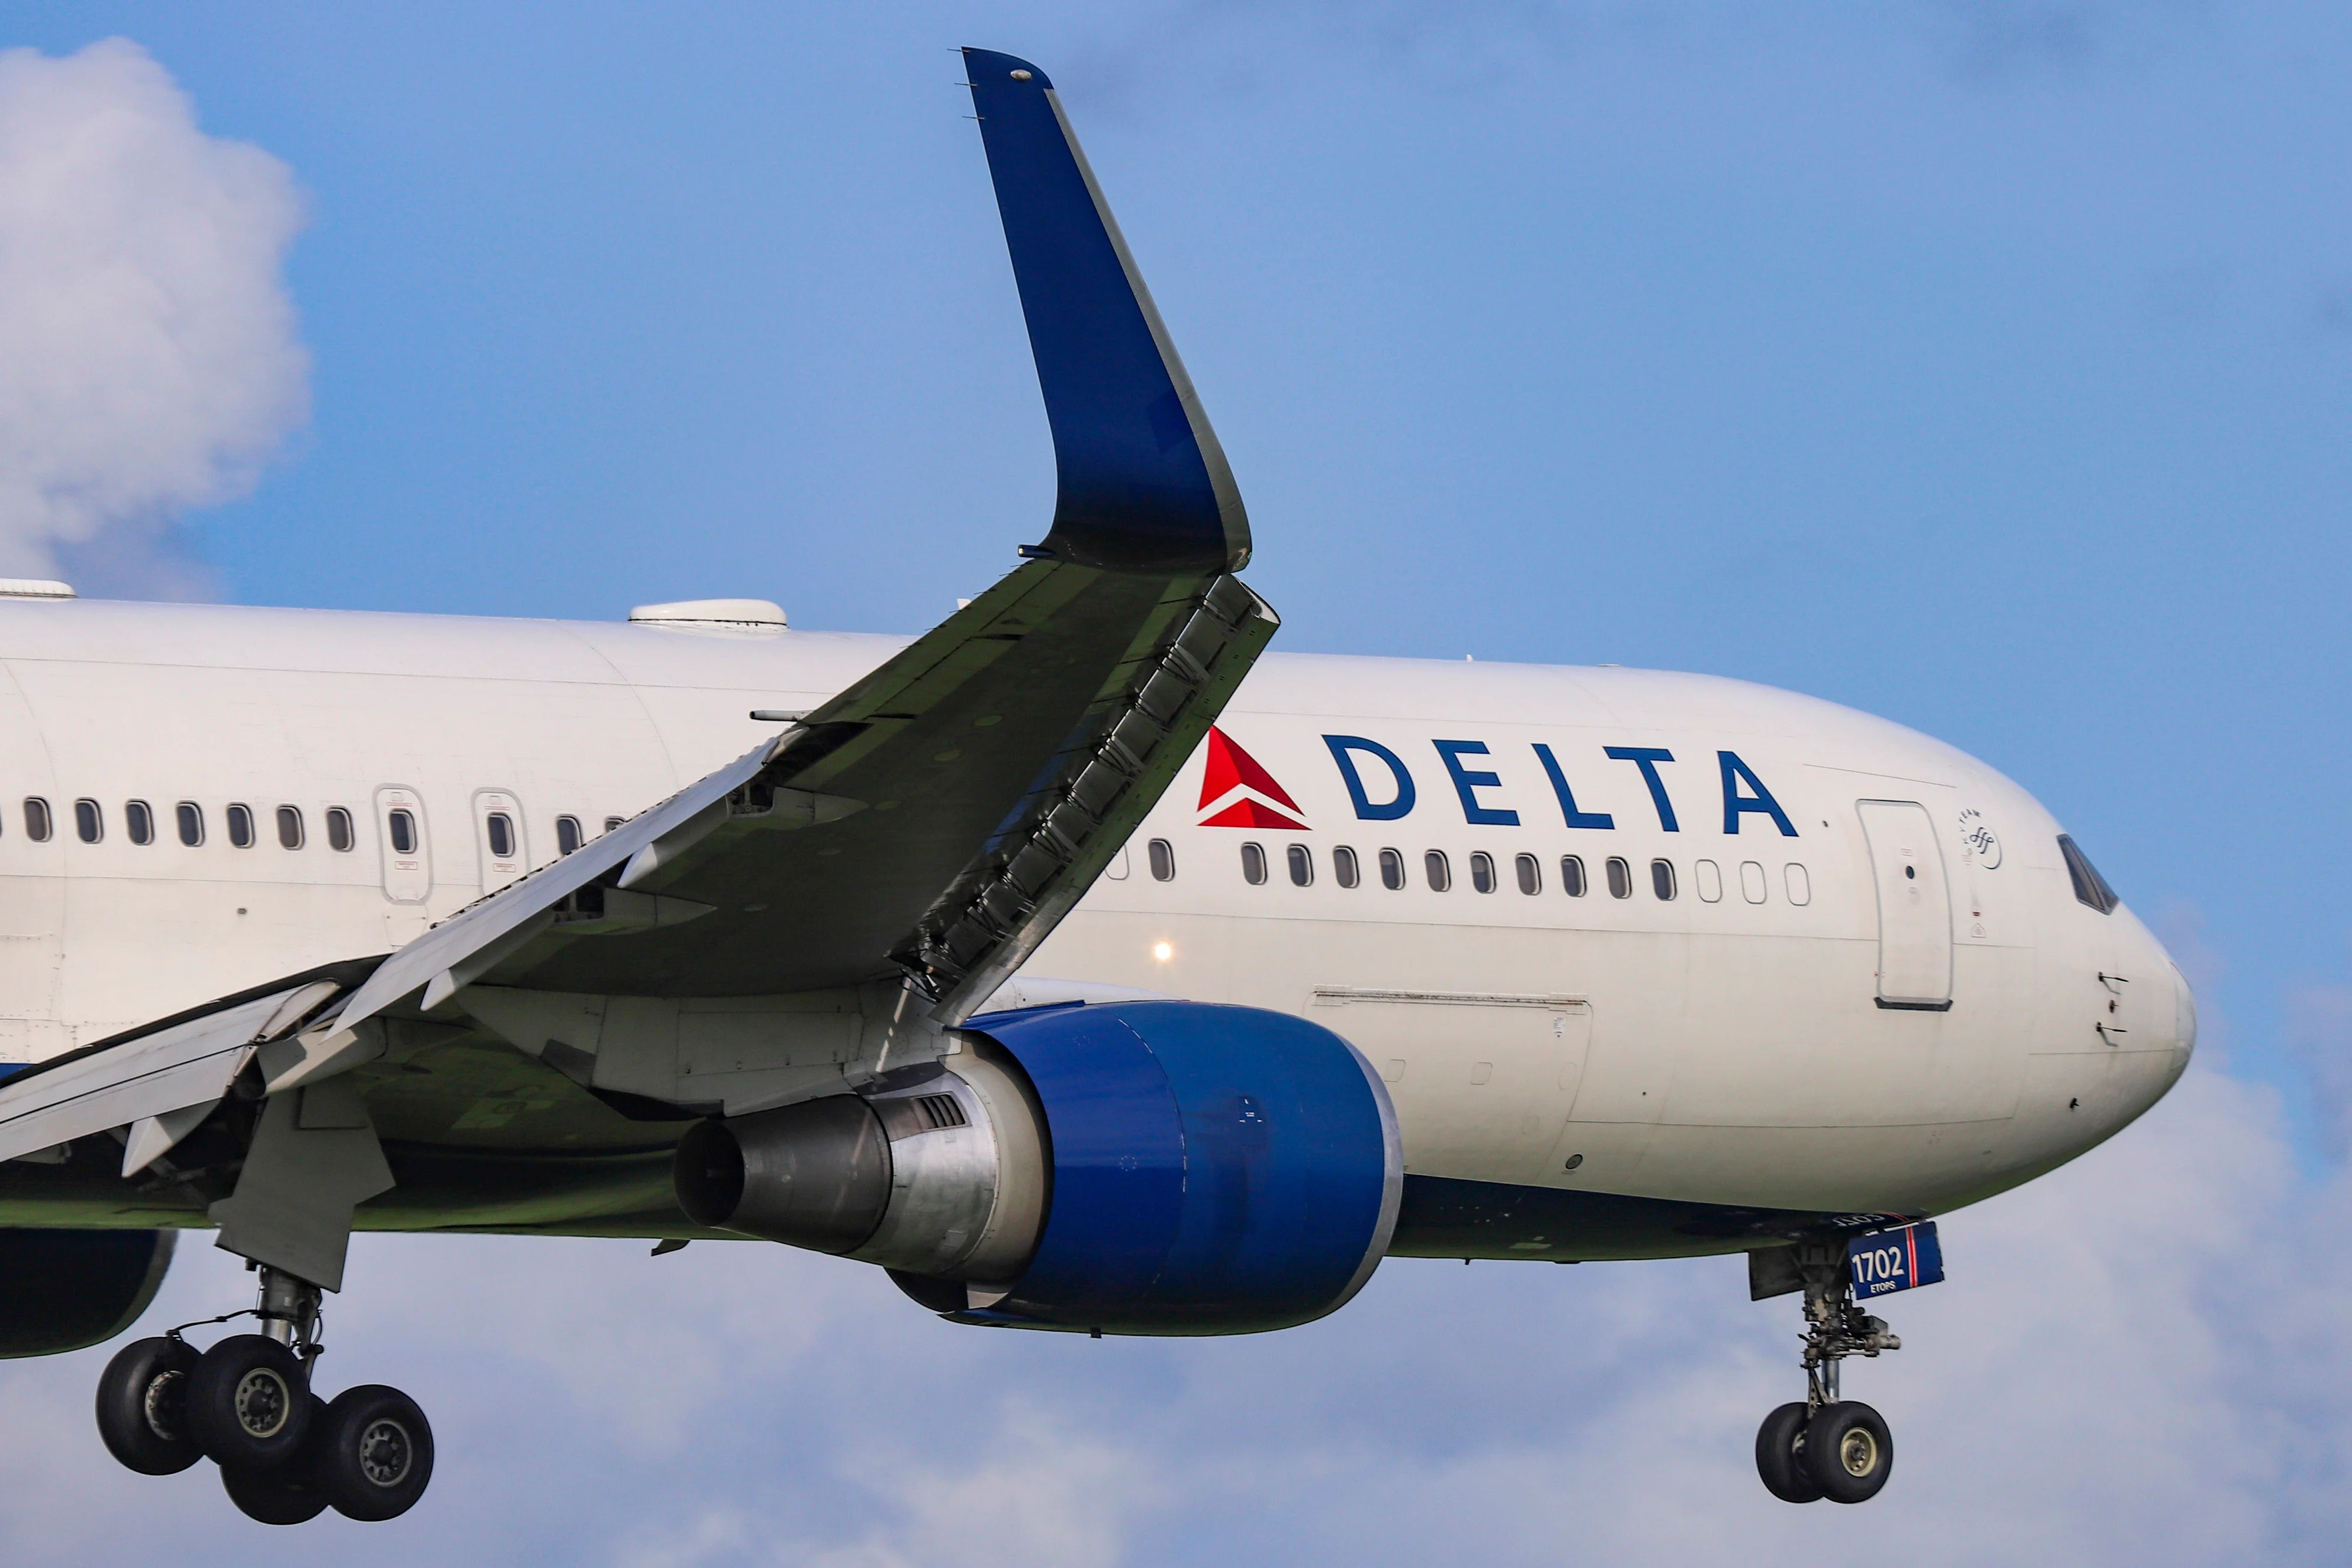 Delta flash sale: Flights around the US have dropped to $97 round-trip